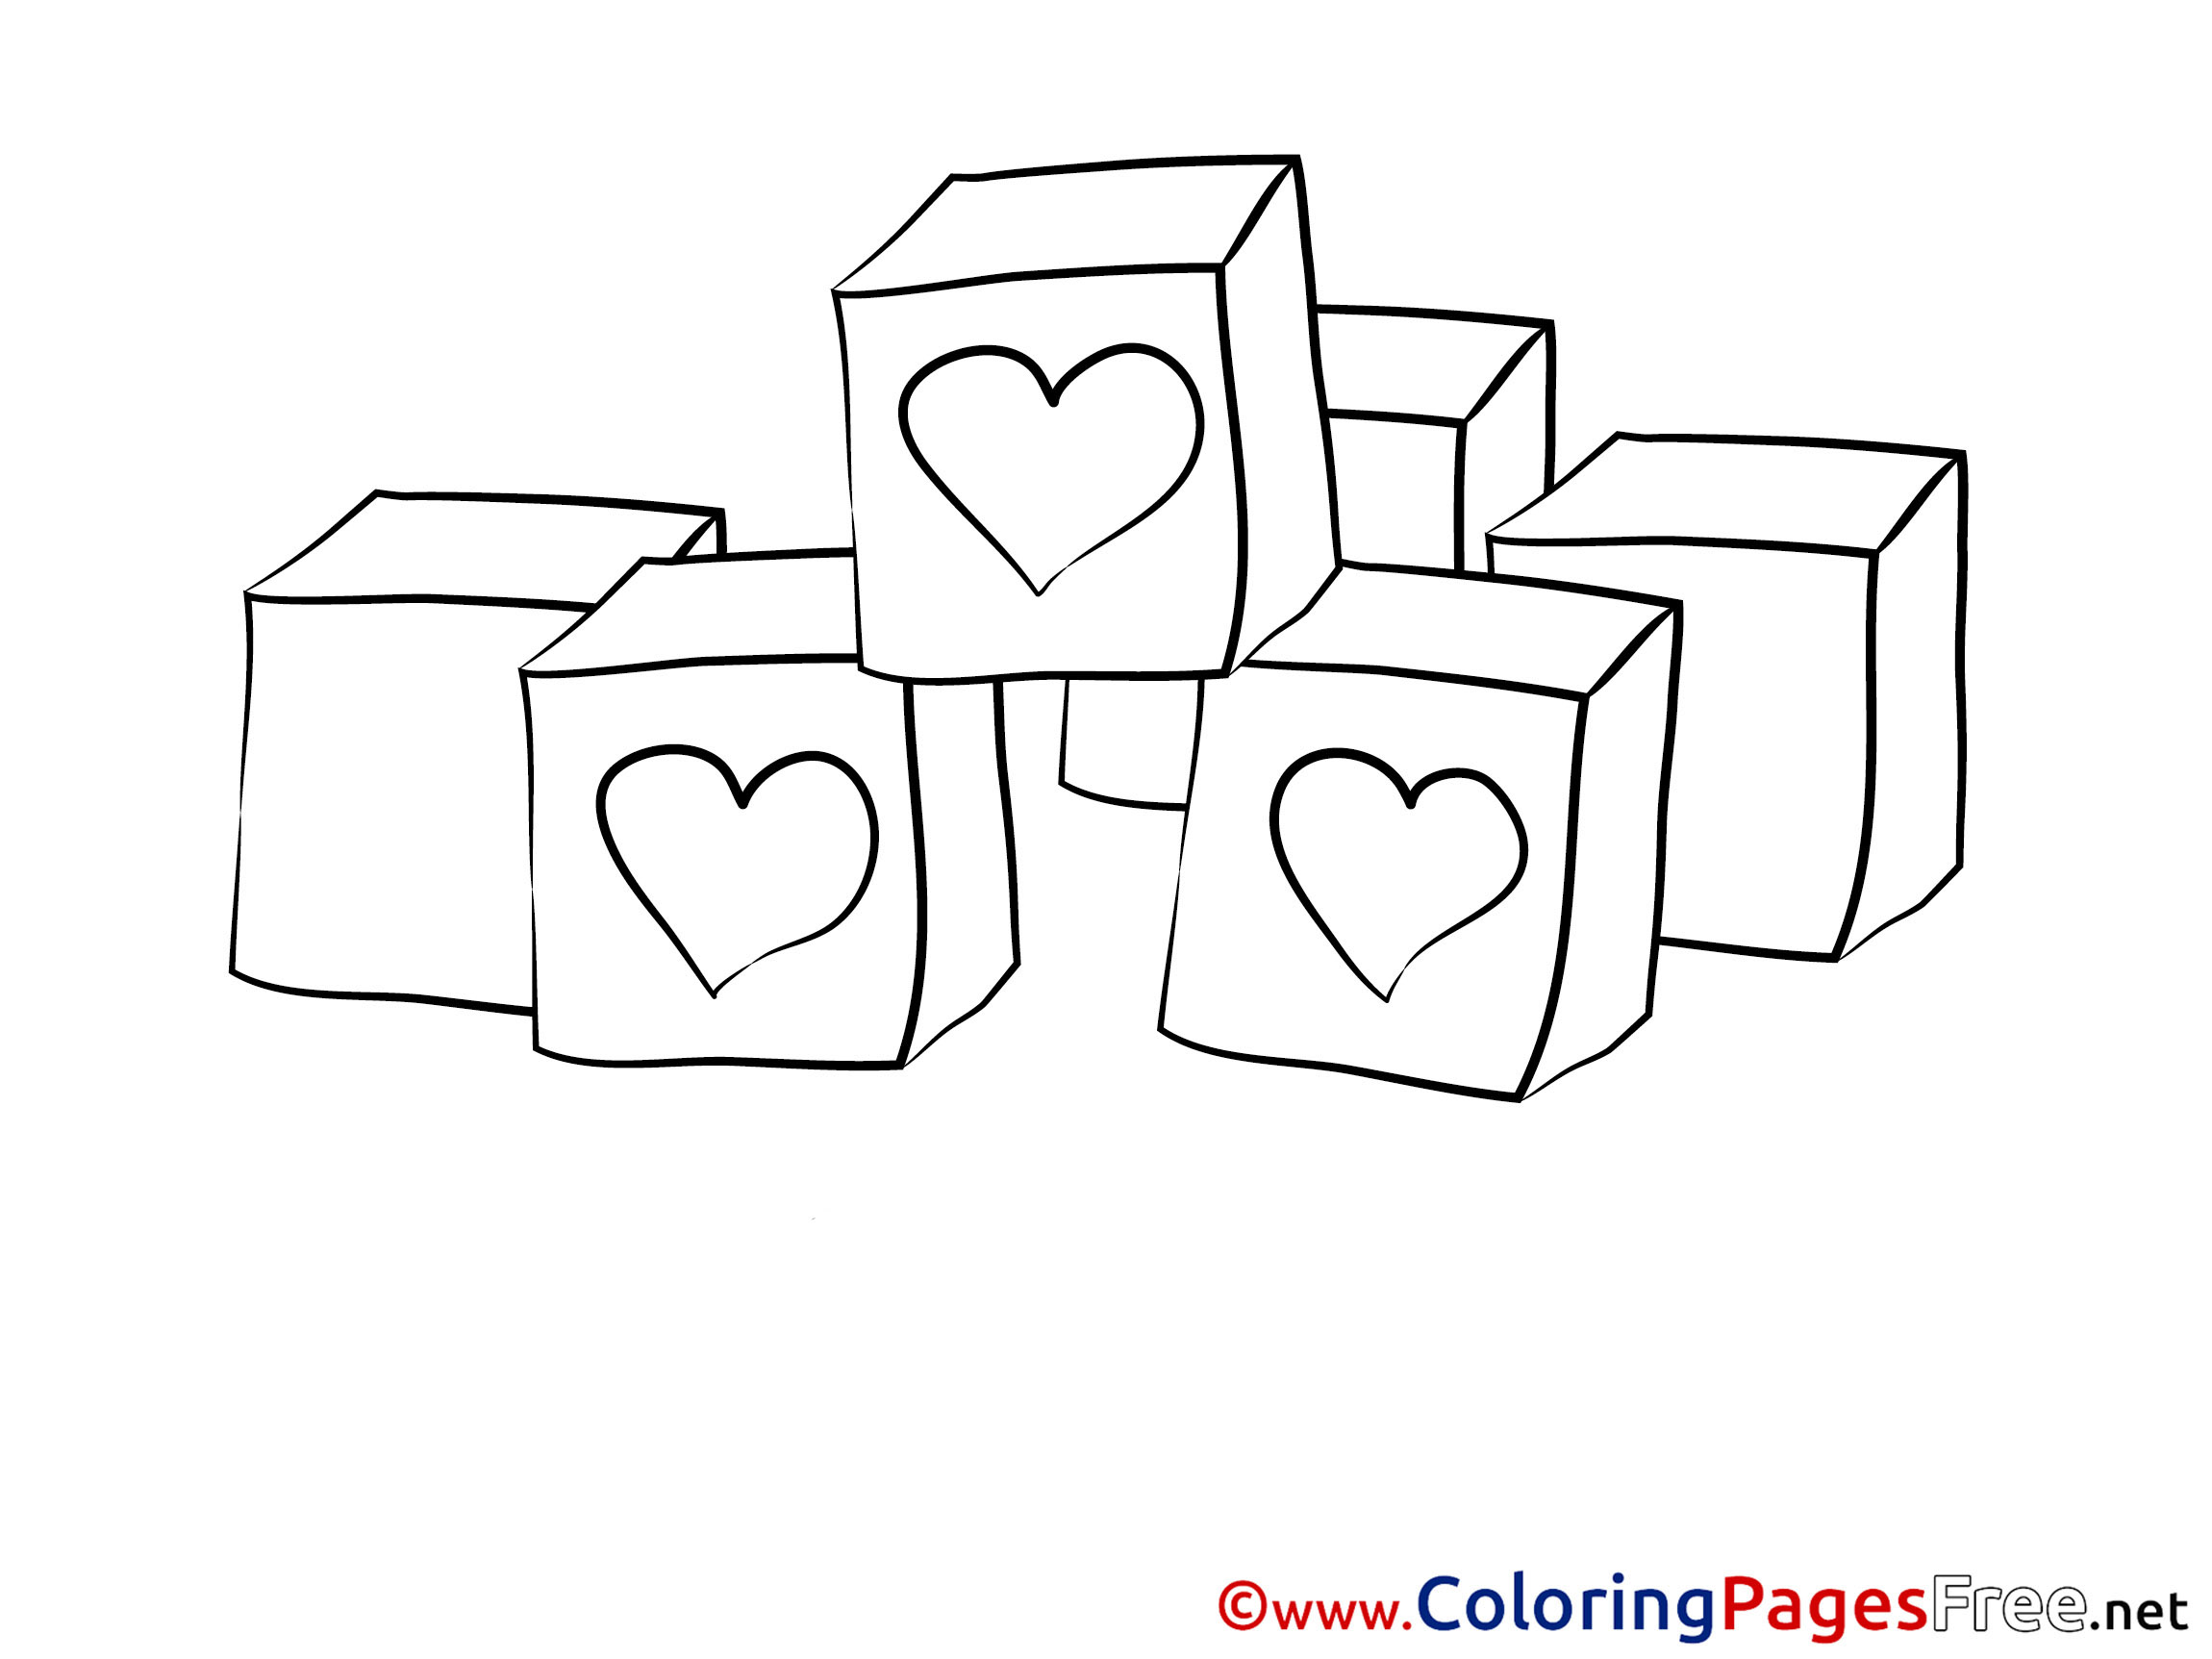 Cubes Valentine's Day Coloring Pages free